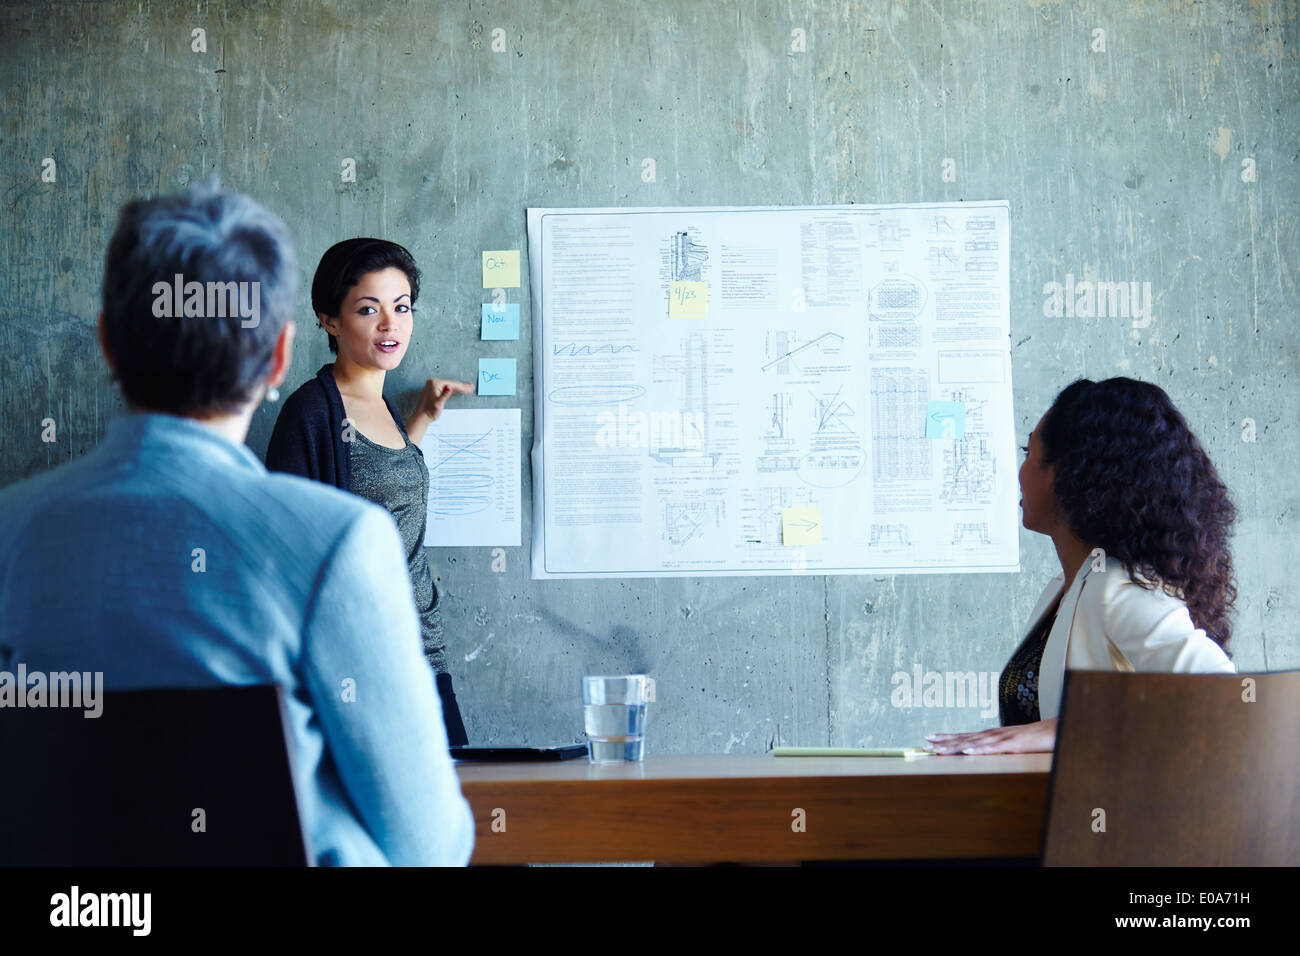 Young businesswomen presenting ideas in office - Stock Image